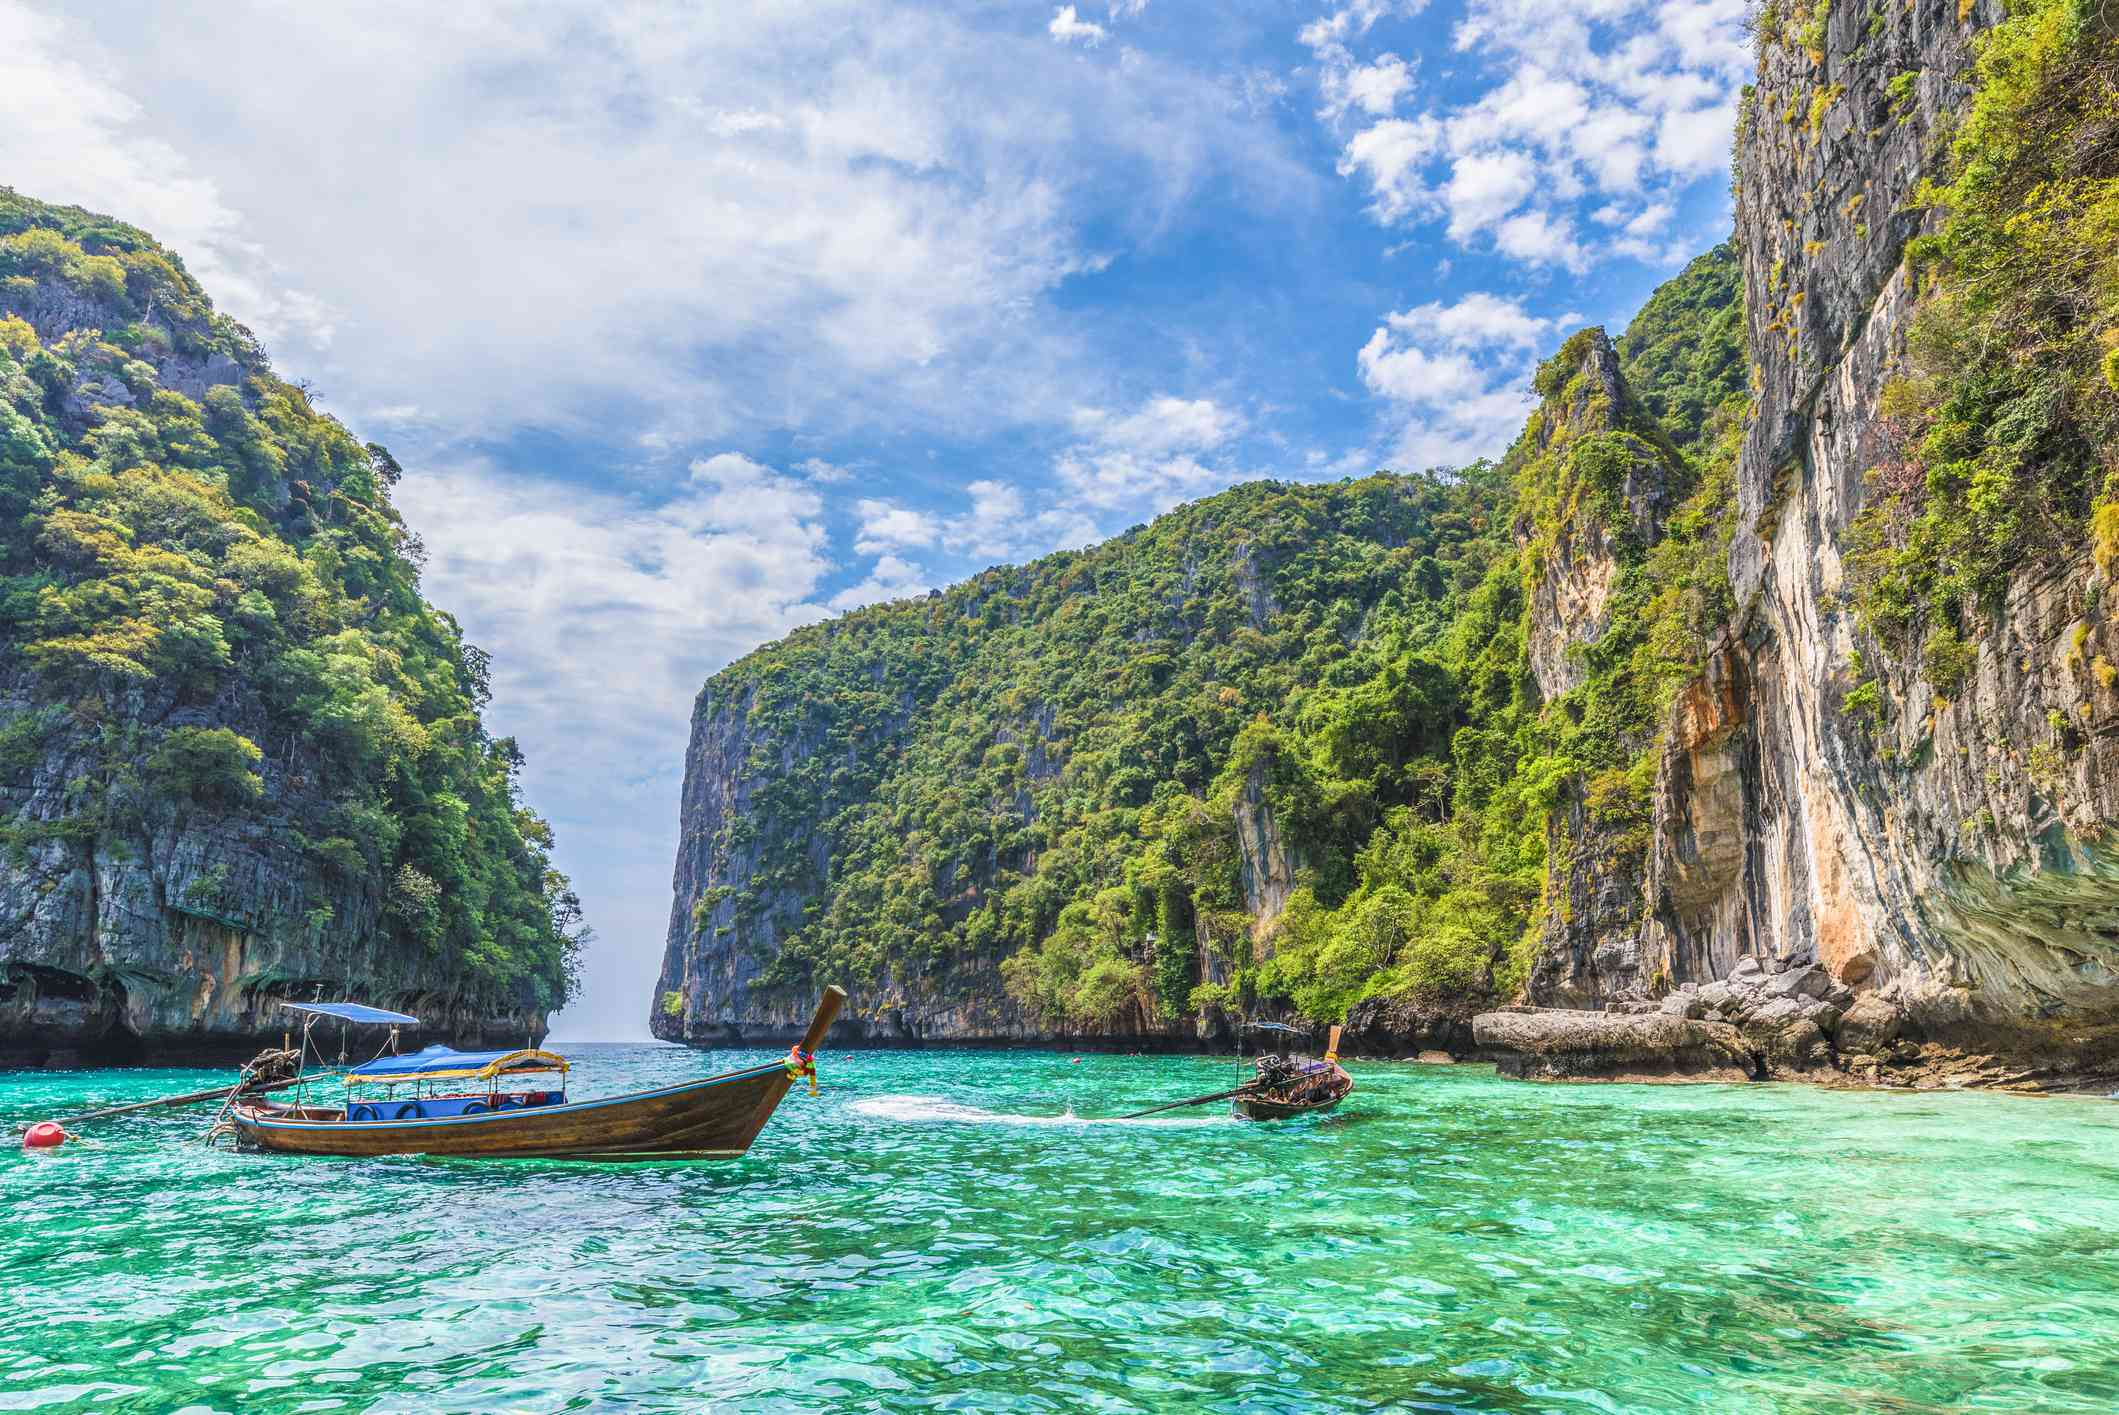 pontoon boats surrounded by cliffs in Pileh Bay